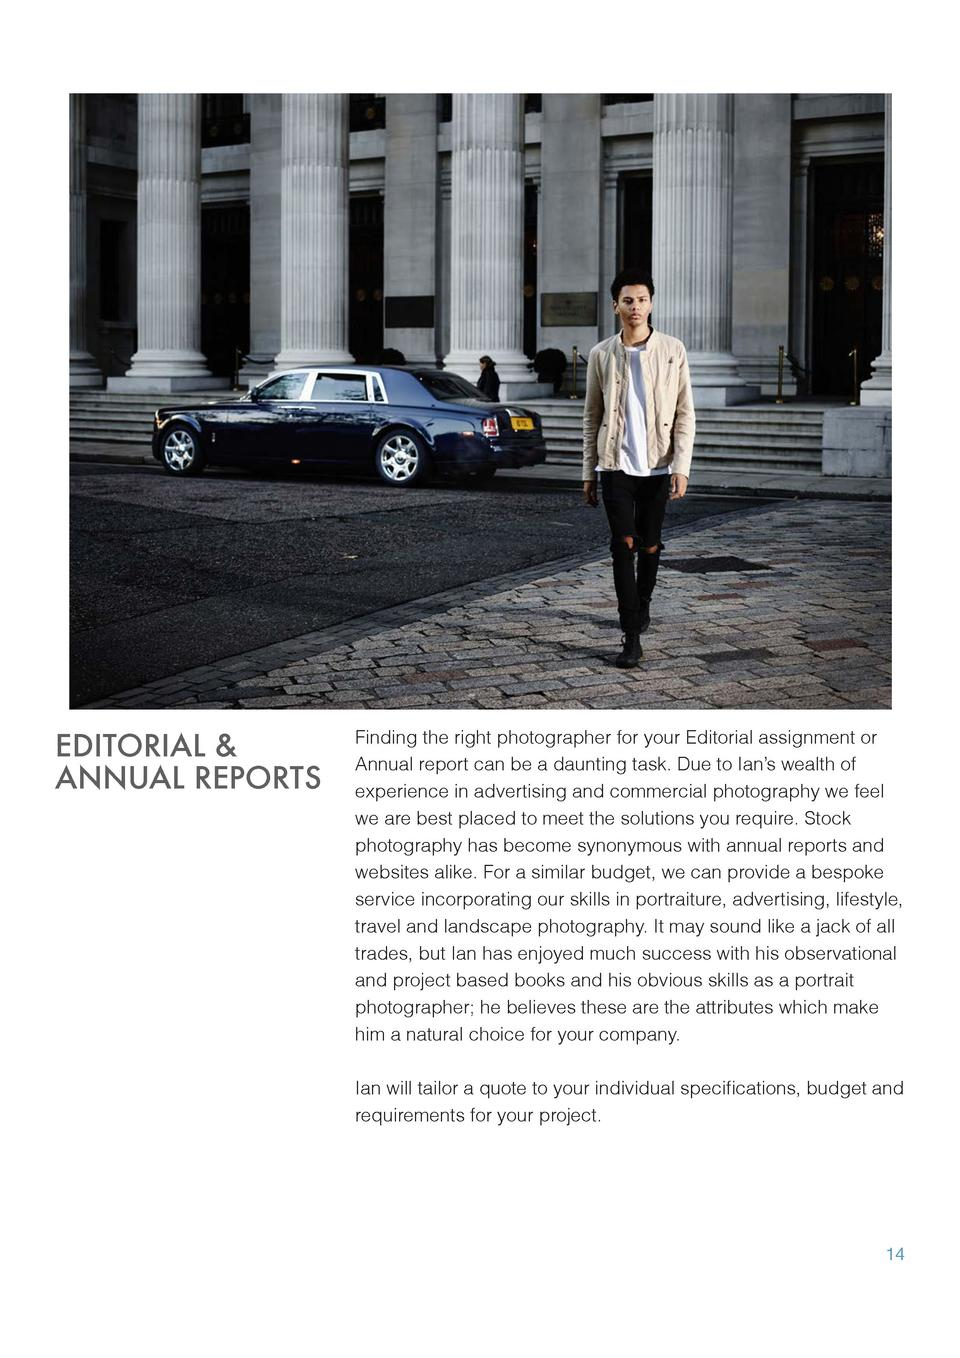 EDITORIAL   ANNUAL REPORTS  Finding the right photographer for your Editorial assignment or Annual report can be a dauntin...